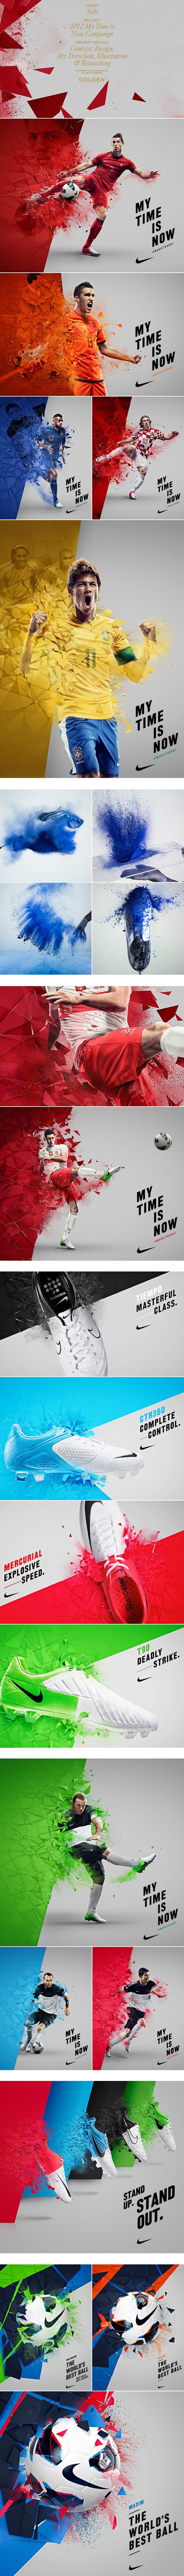 this is just a nice way of creating interest with graphics and superstars to promote nike product. Really liked how the colors were incorporated in the campaign.